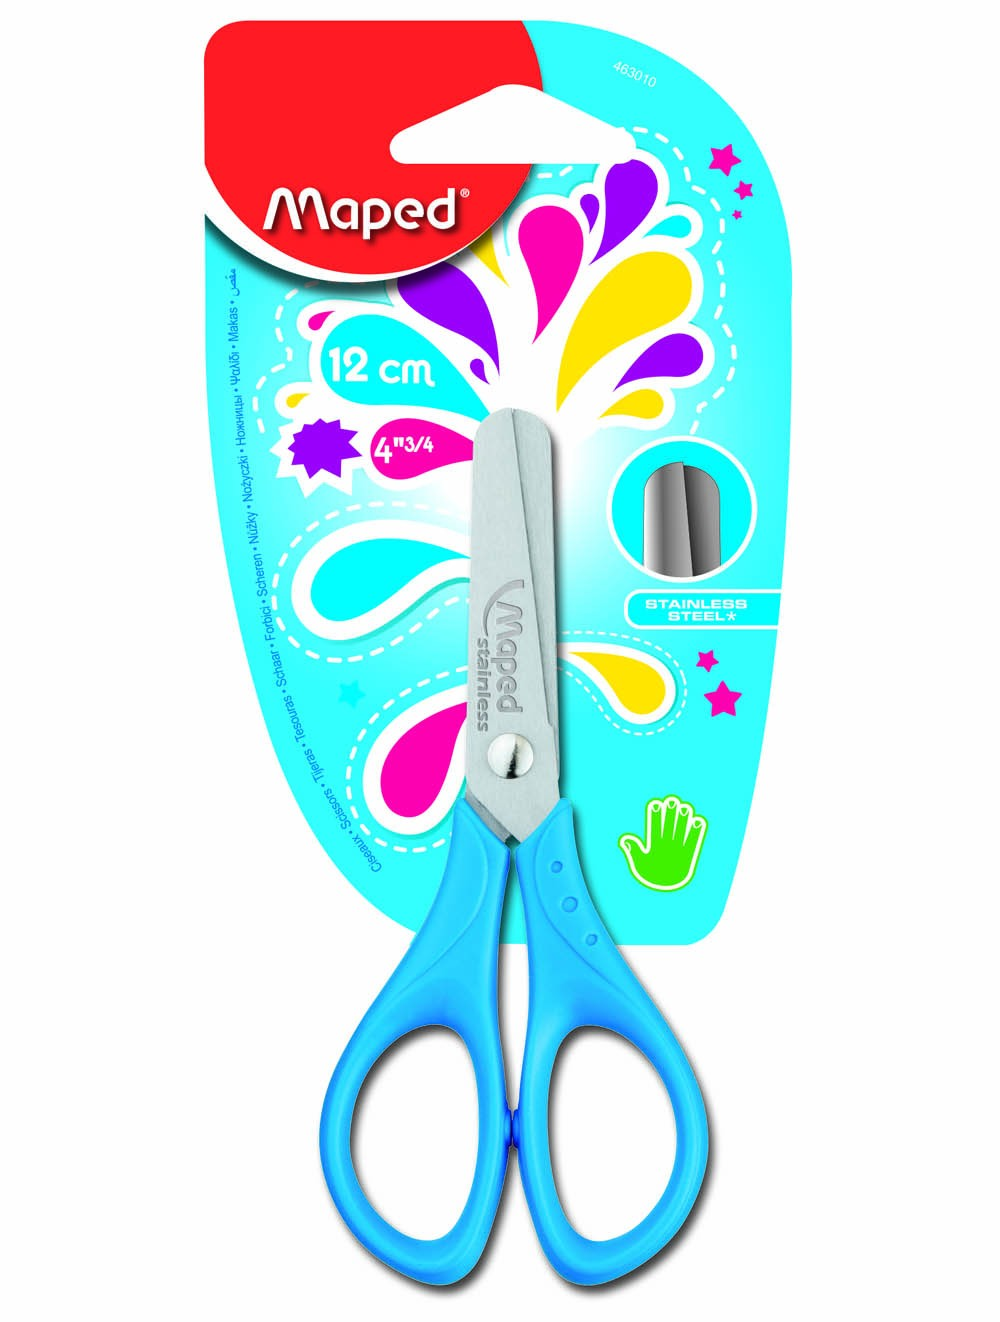 MAPED 13CM ESSENTIAL TRY ME SCISSOR